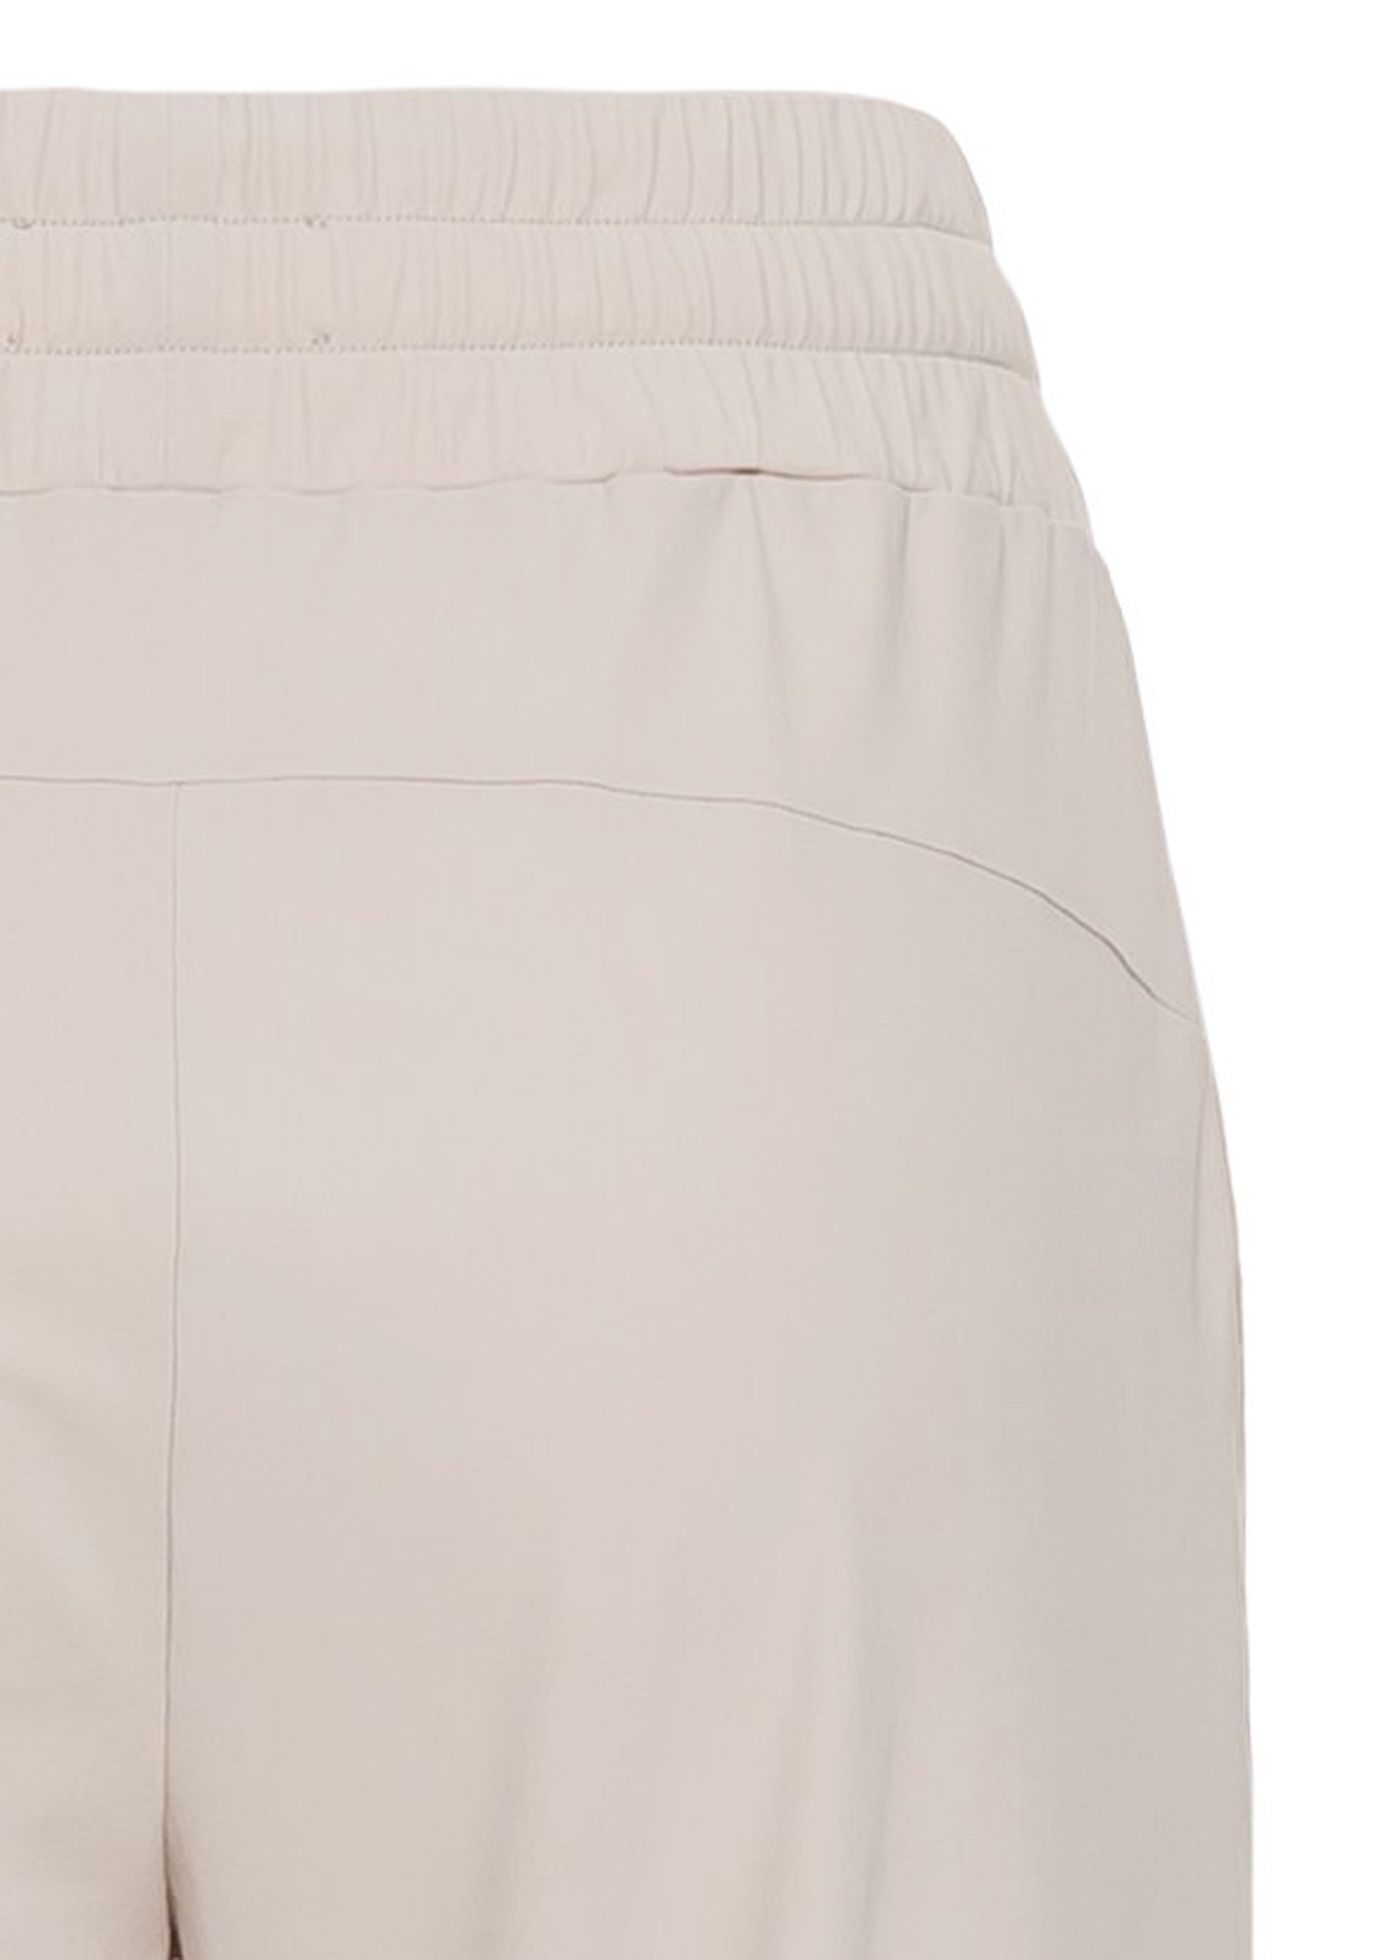 LUXE LEGER TRACK PANTS SHEER image number 3